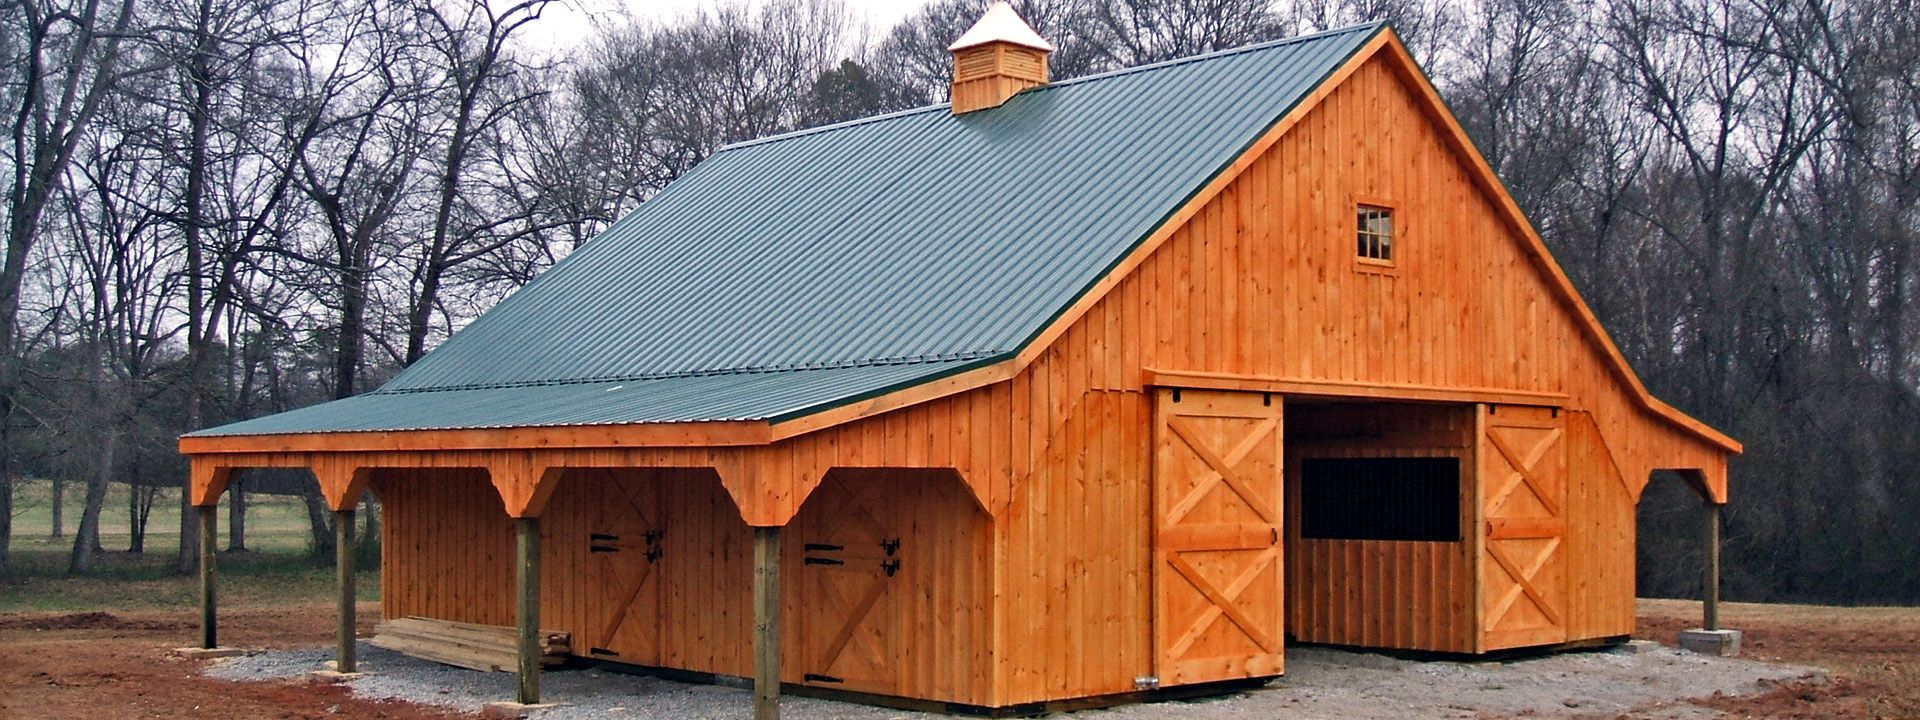 Modular horse barn high profile with overhangs 4 stalls for Equestrian barn plans